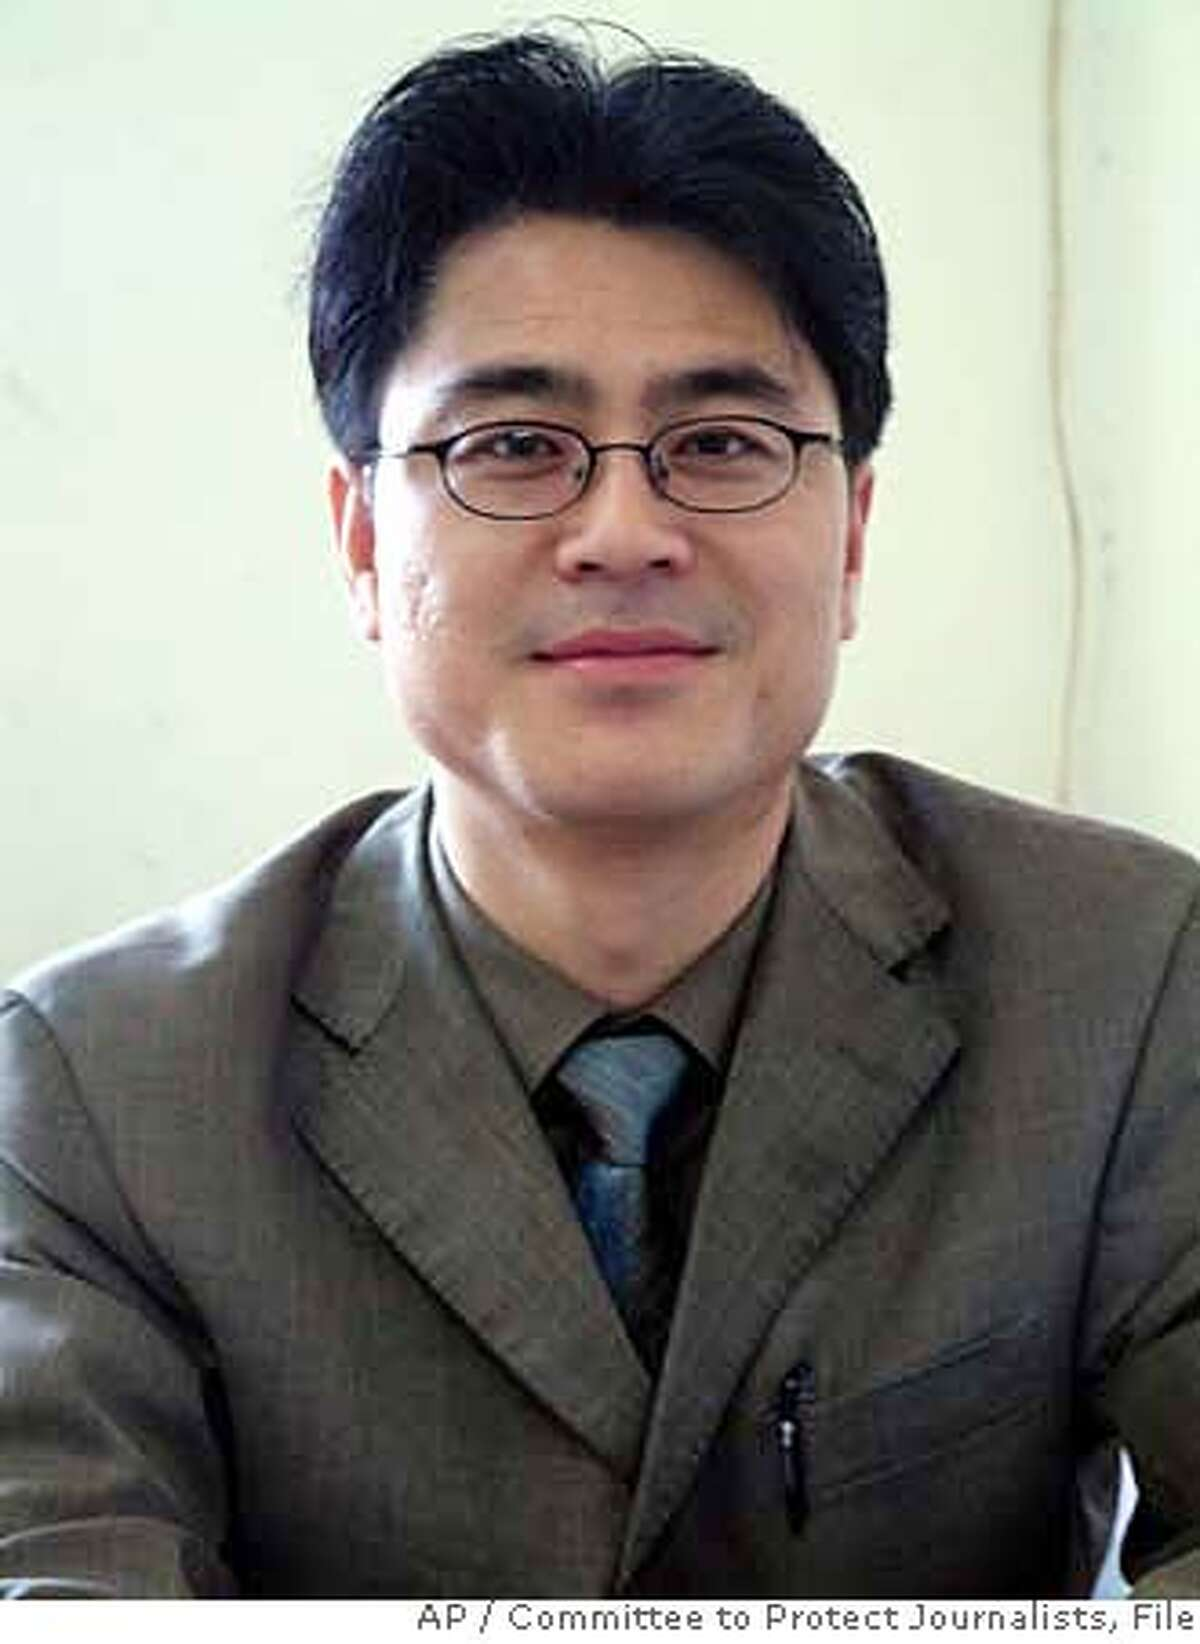 *** FILE *** This undated file photo, released on Nov. 22, 2005 by the Committee to Protect Journalists (CPJ) shows Shi Tao, a freelance journalist for Internet publications and an editor for the Chinese business newspaper Dangdai Shang Bao. A House committee chairman Monday Nov. 5, 2007 angrily rejected Yahoo Inc.'s explanation for why it provided incomplete information to Congress about its role in the arrest of a Chinese journalist.